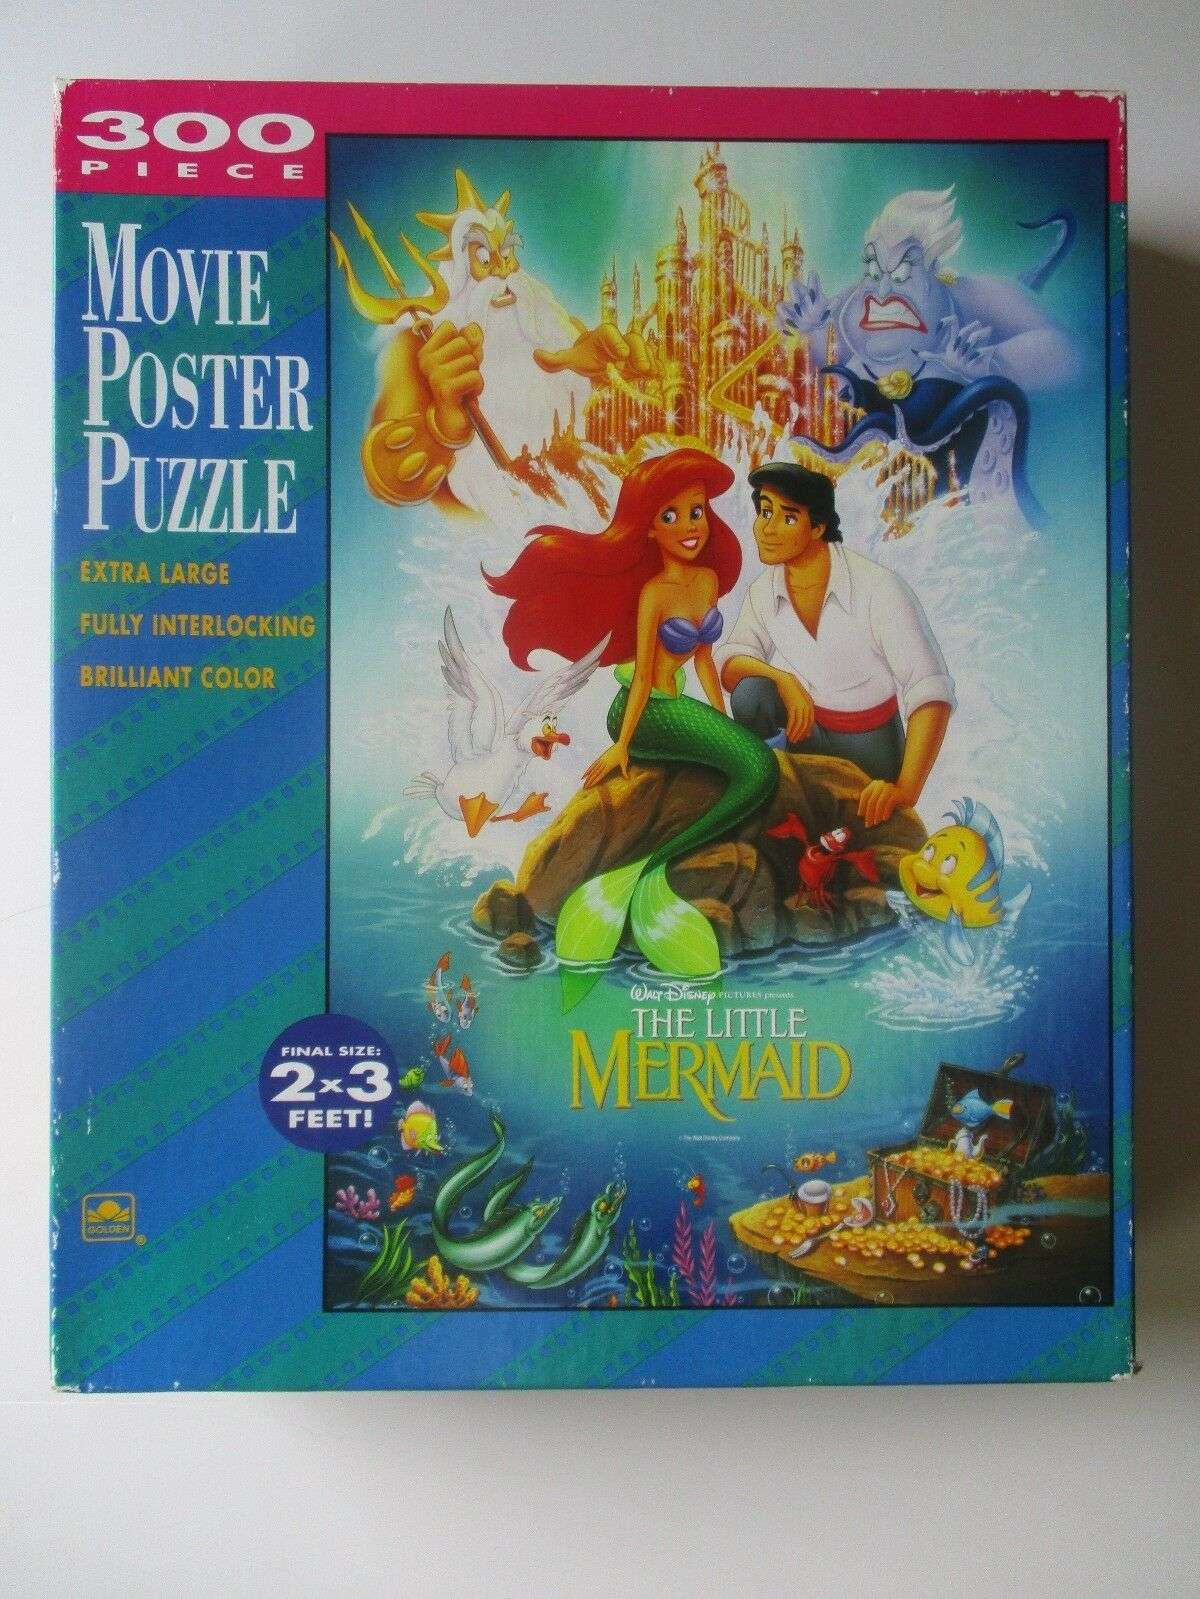 My Little Mermaid Movie Poster Puzzle 300 Pieces | Little ...